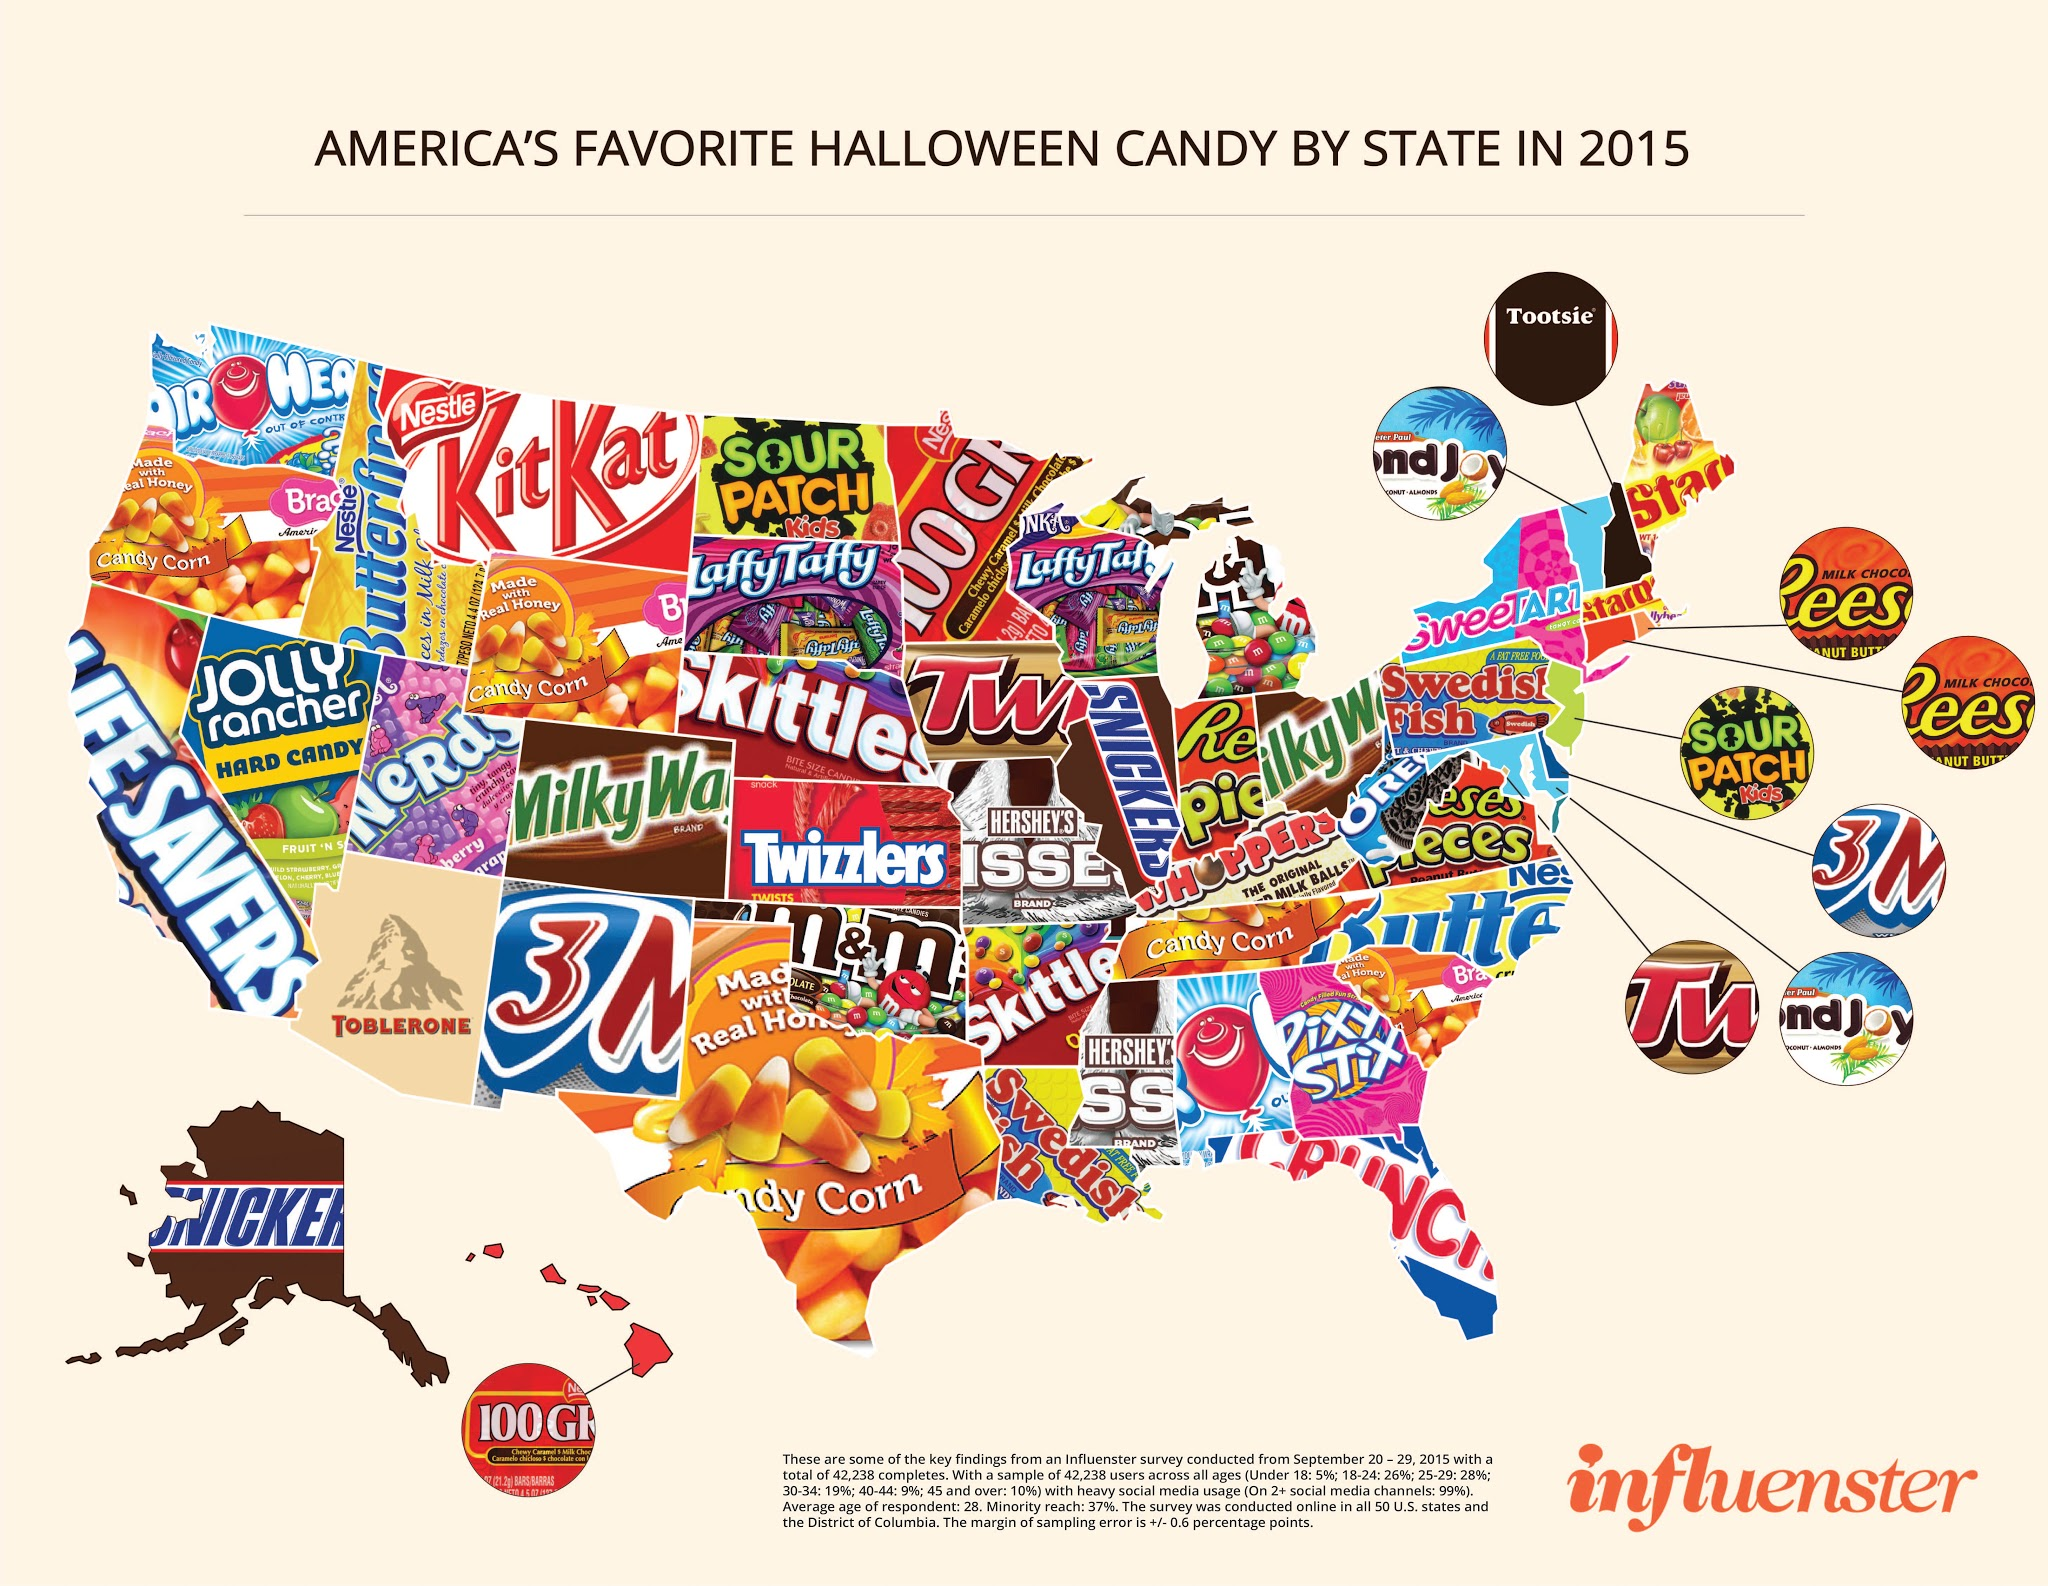 candy-by-state